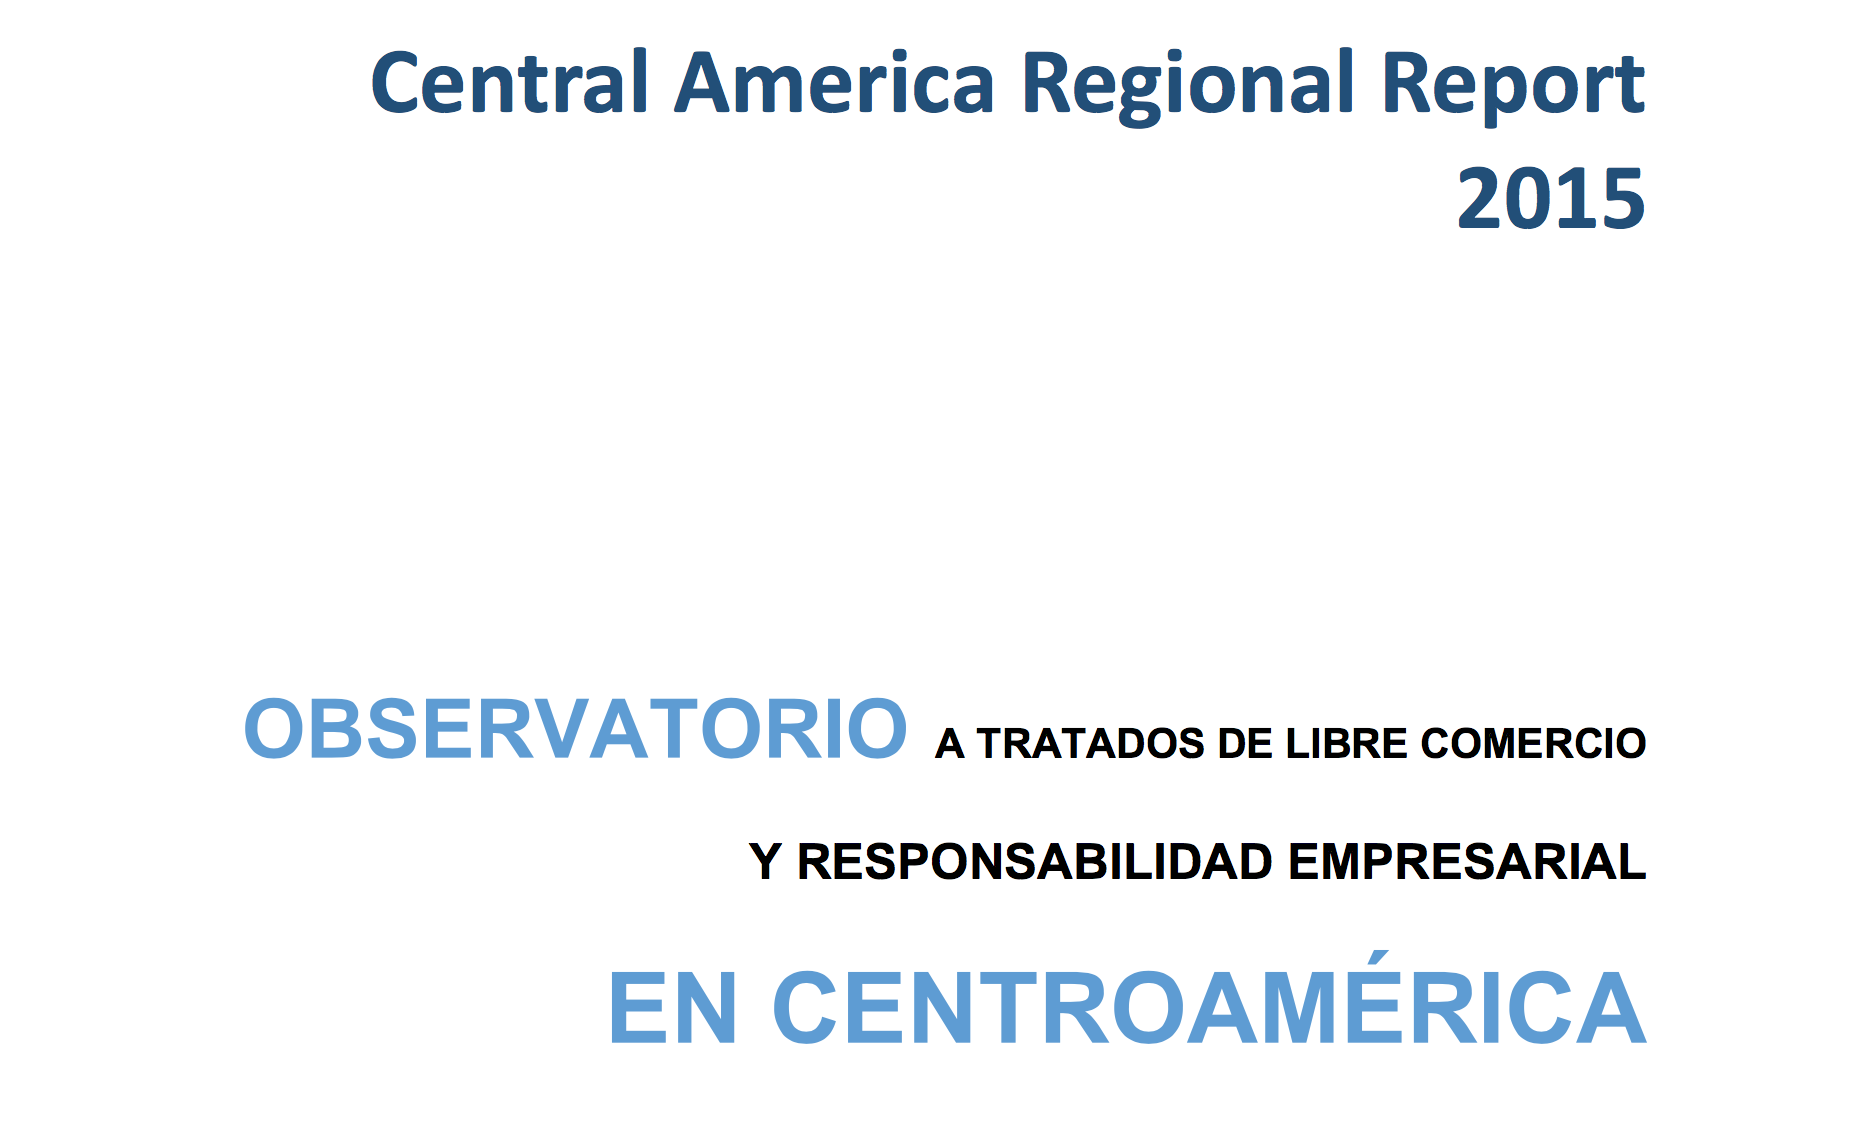 Regional Observatory on Free Trade and Corporate Responsibility in Central America